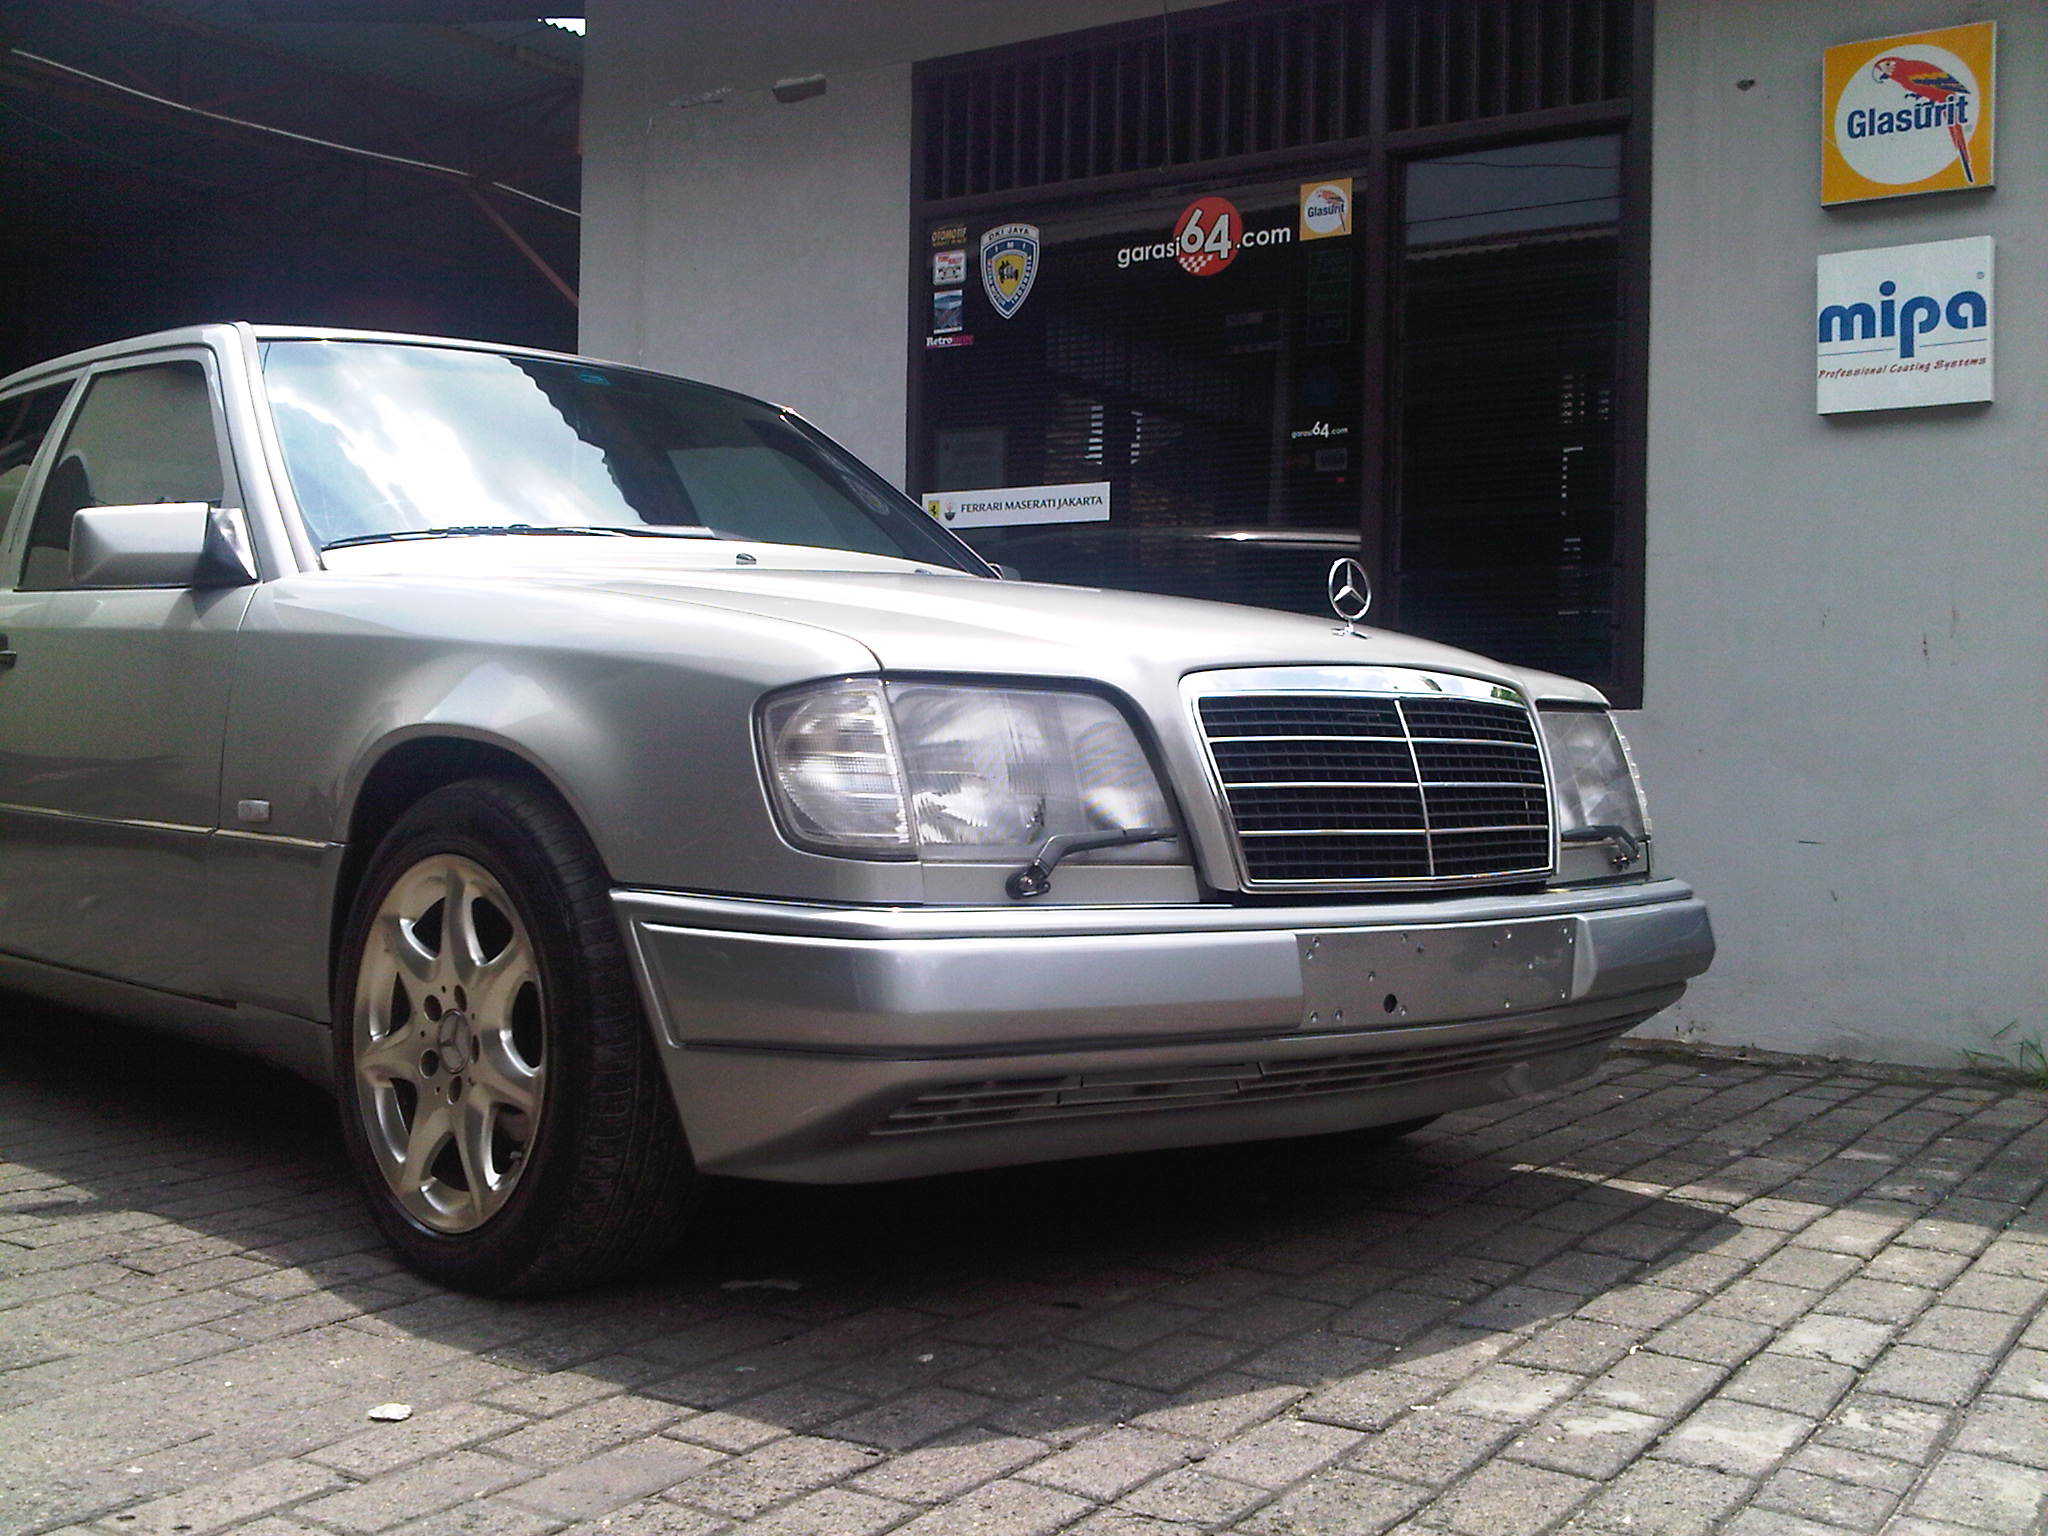 1995 mercedes benz e320 w124 garasi 64 for Mercedes benz creator